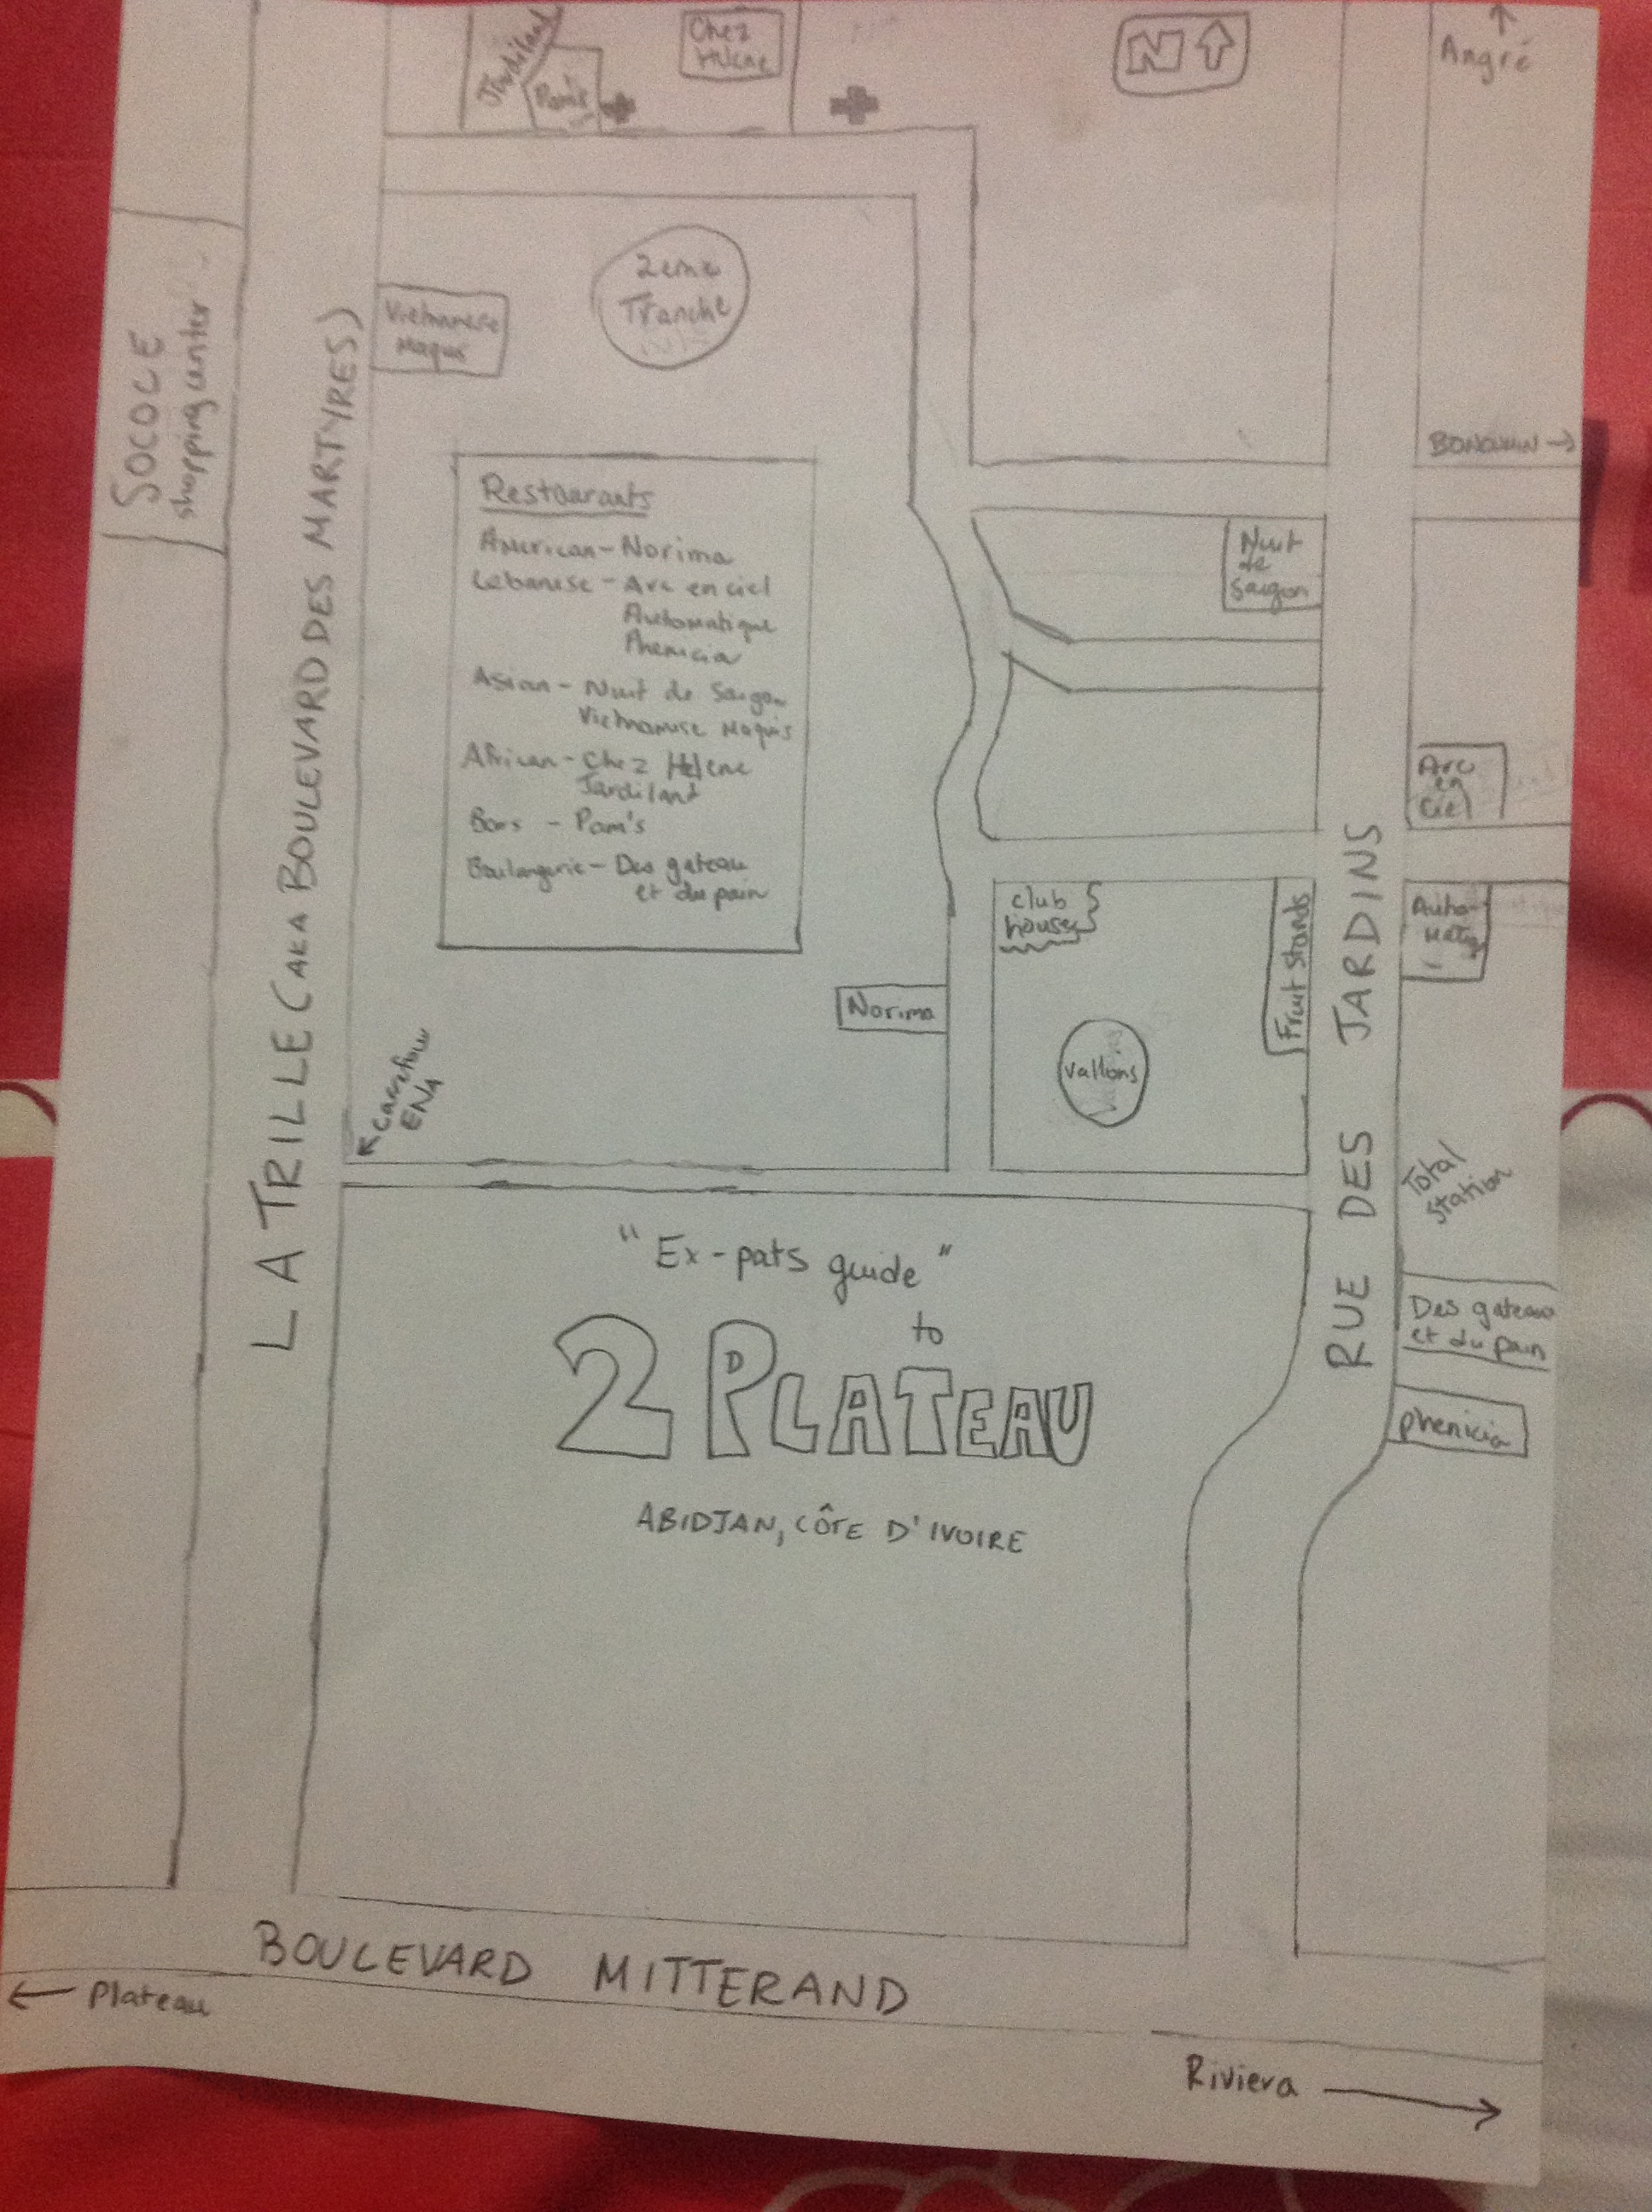 Ex-Pat guide to Abidjan - image 1 - student project